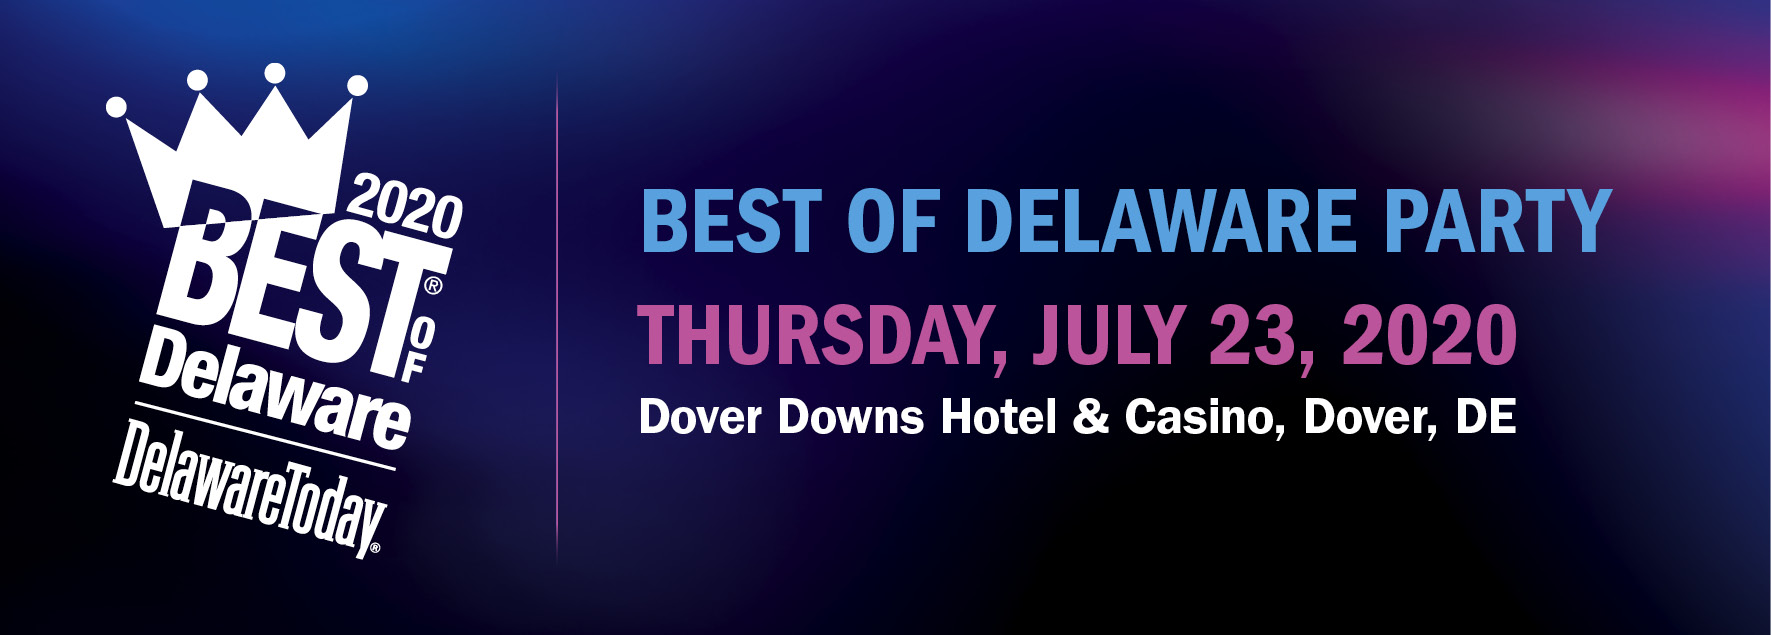 Tickets for 2020 Best of Delaware Party in Dover from ShowClix